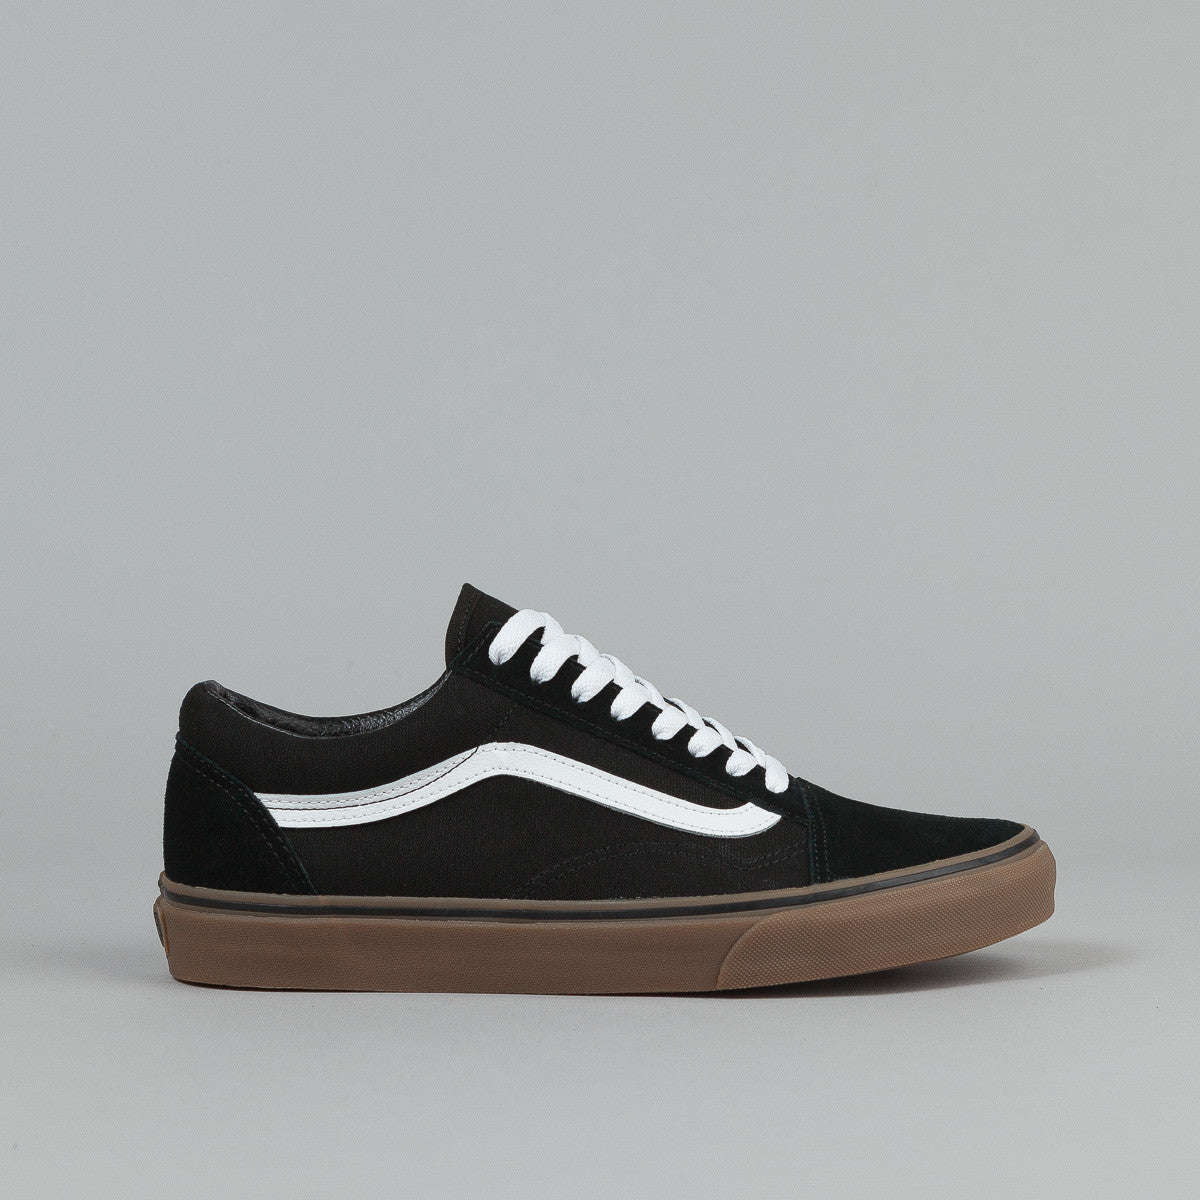 vans old skool black gum sole uk